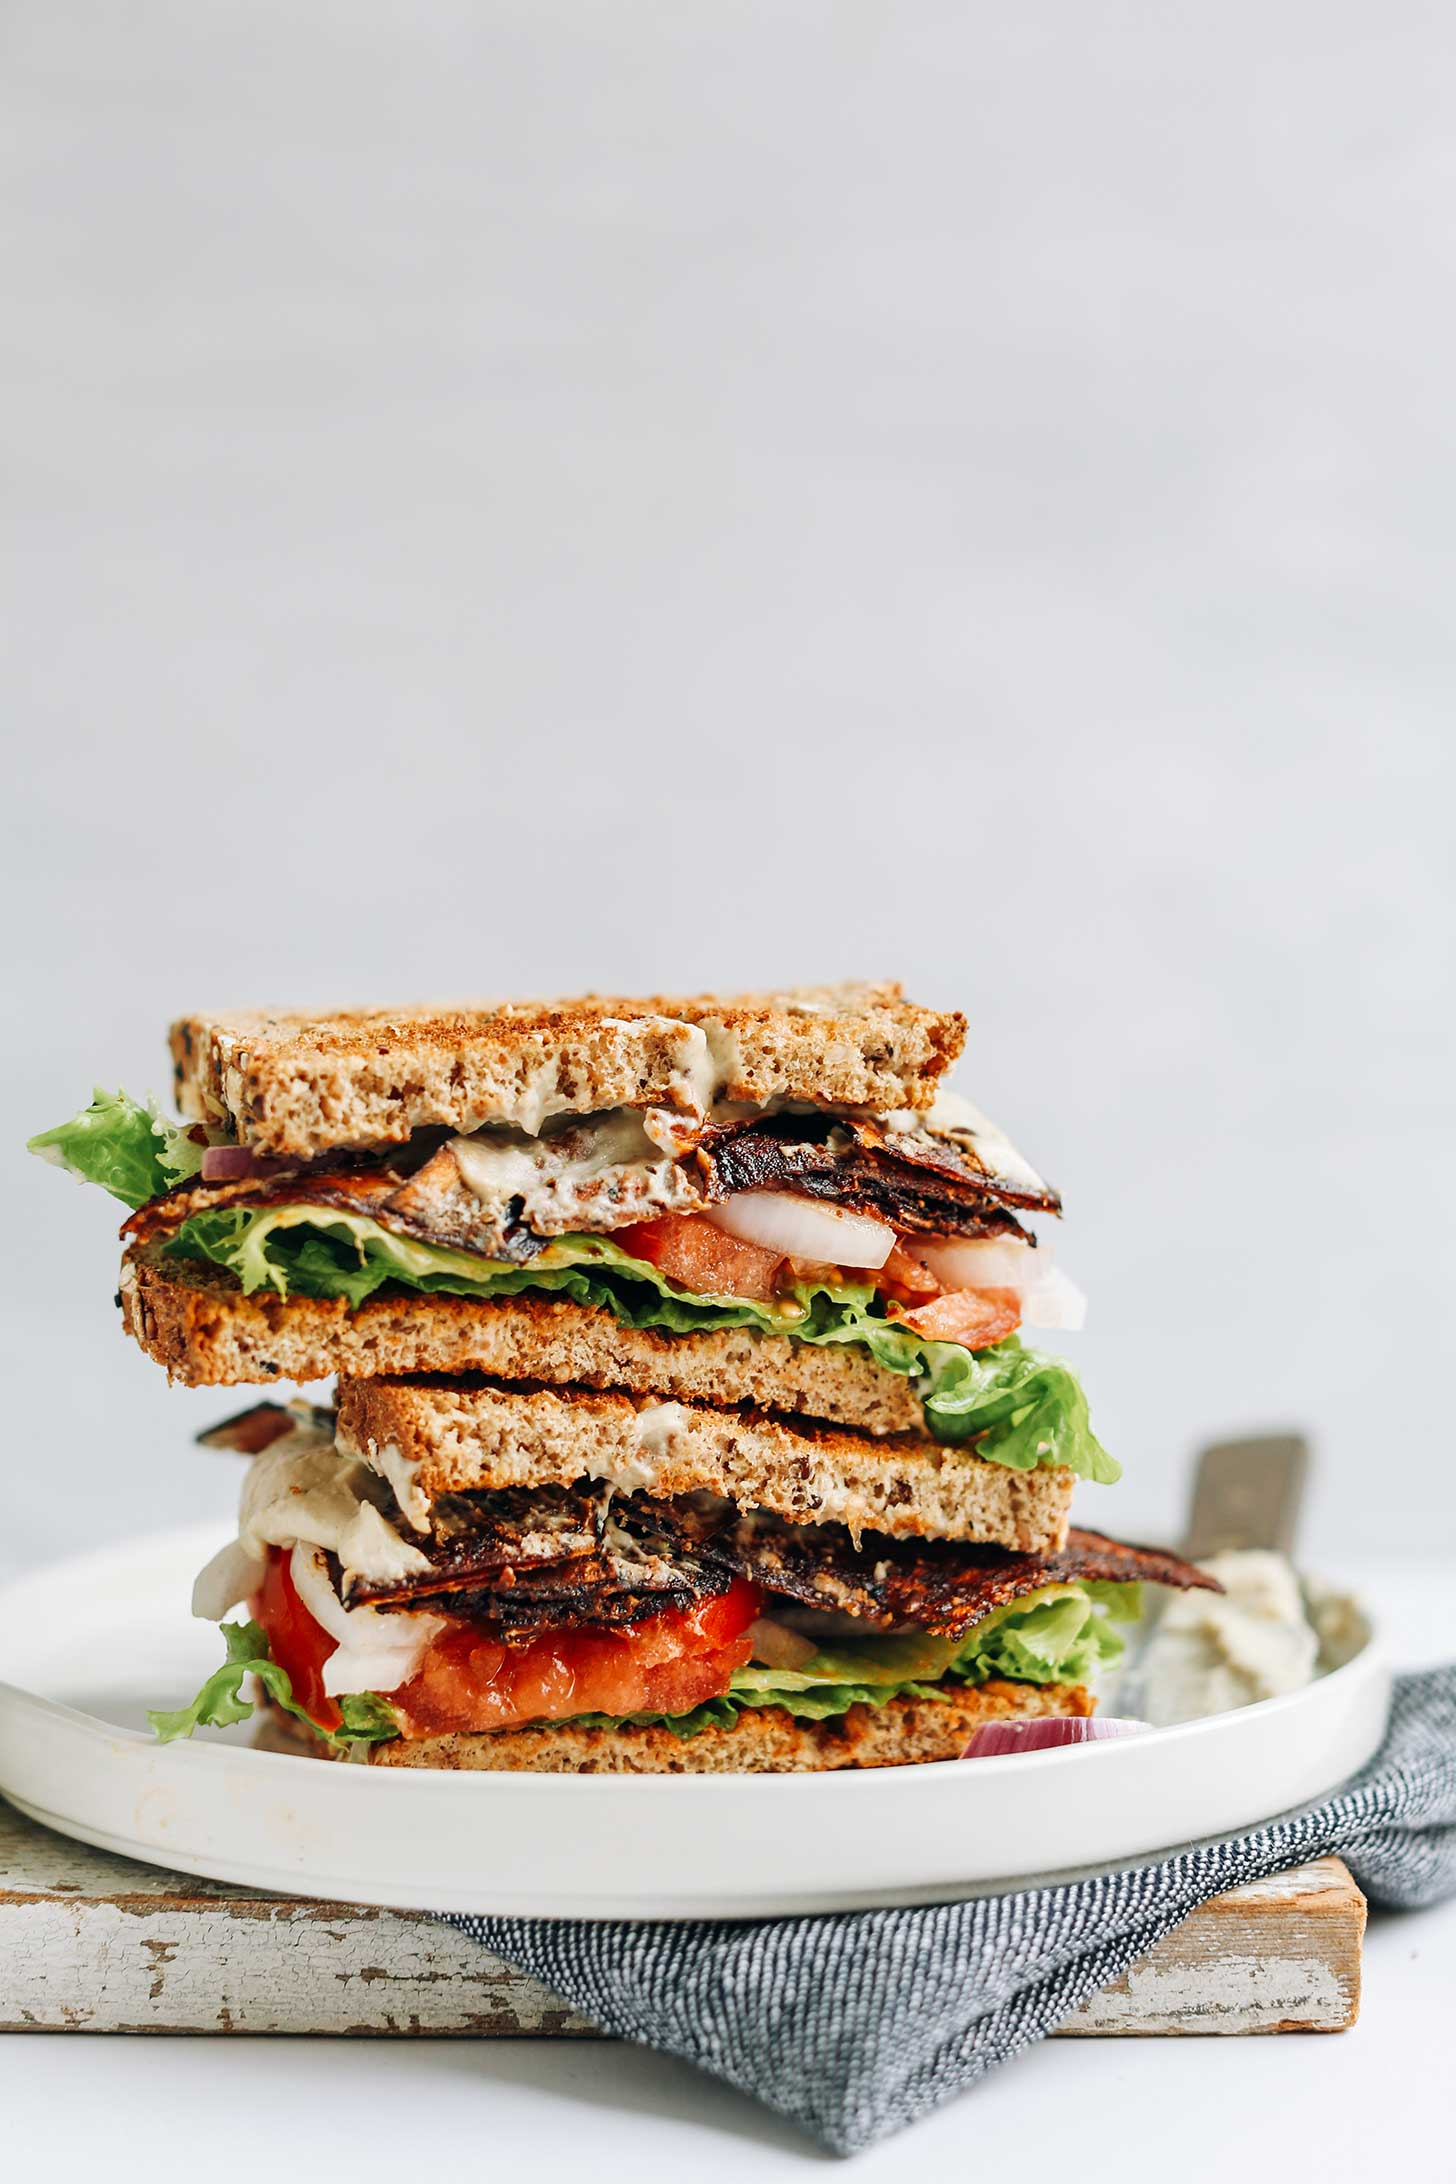 Stacked Vegan BLT Sandwich halves for a satisfying vegan lunch